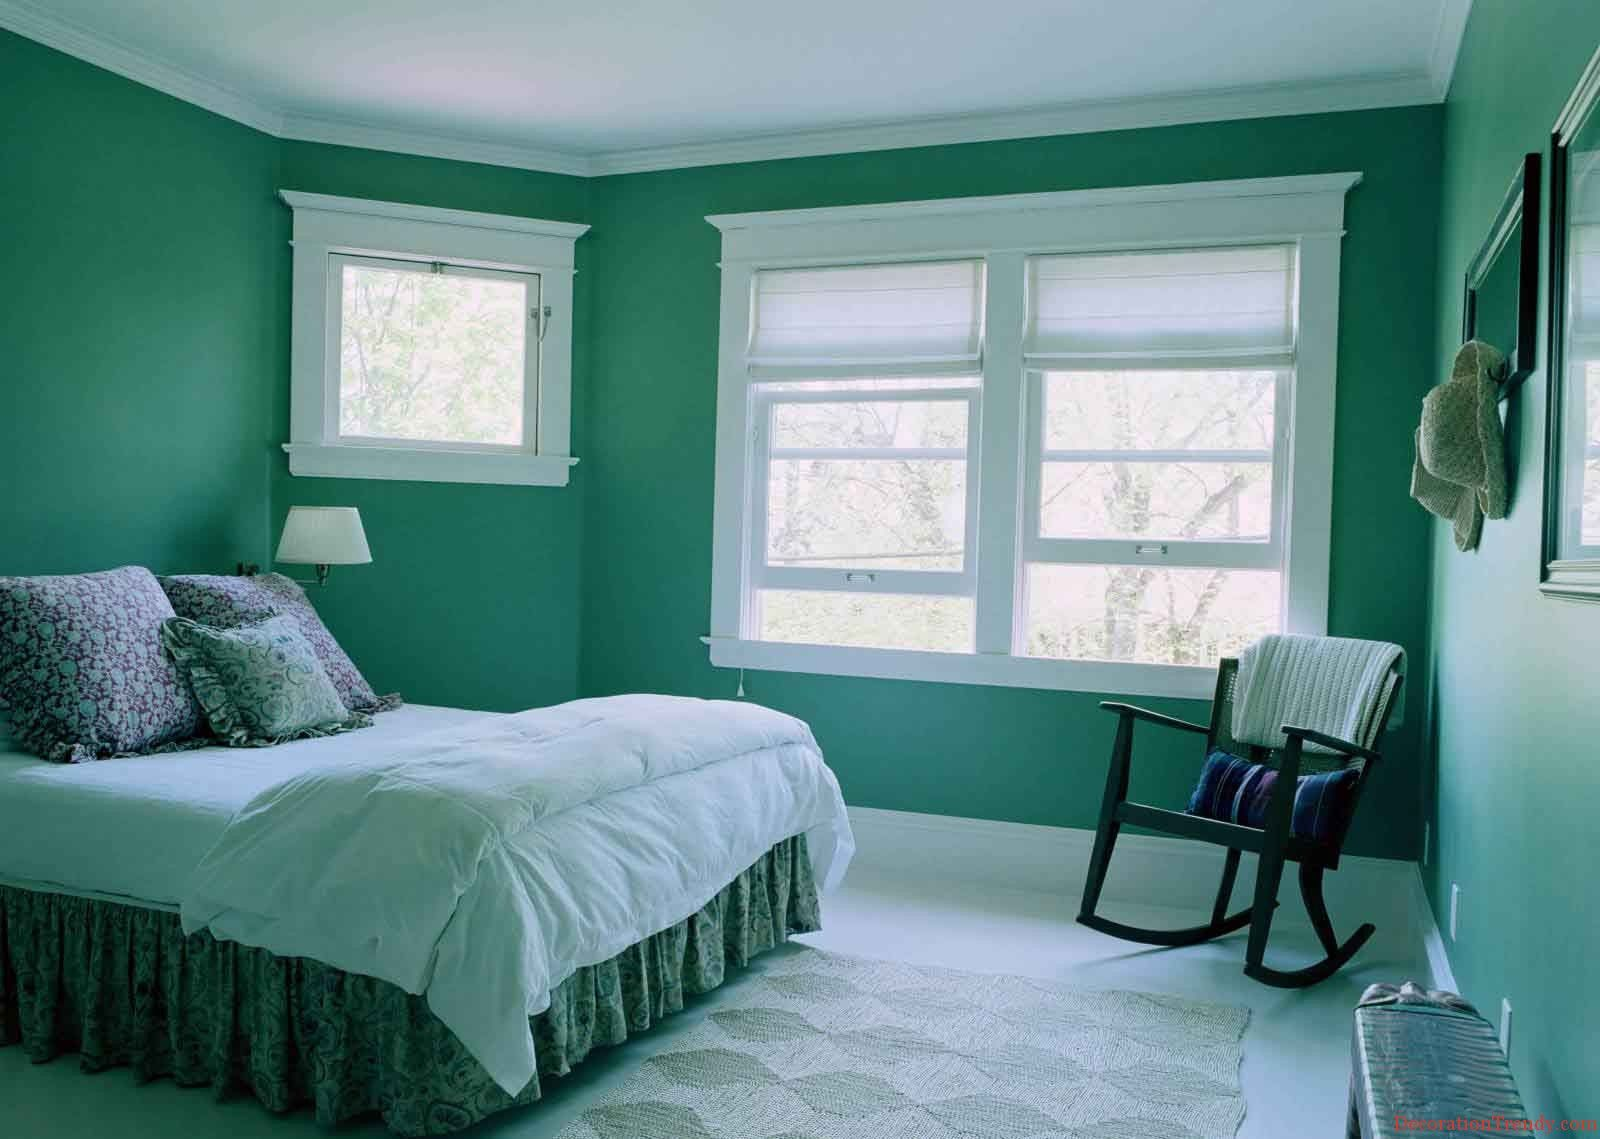 Light Paint Colors For Bedrooms Wall Color Combination Design Ideas And Photos Get Creative Wall